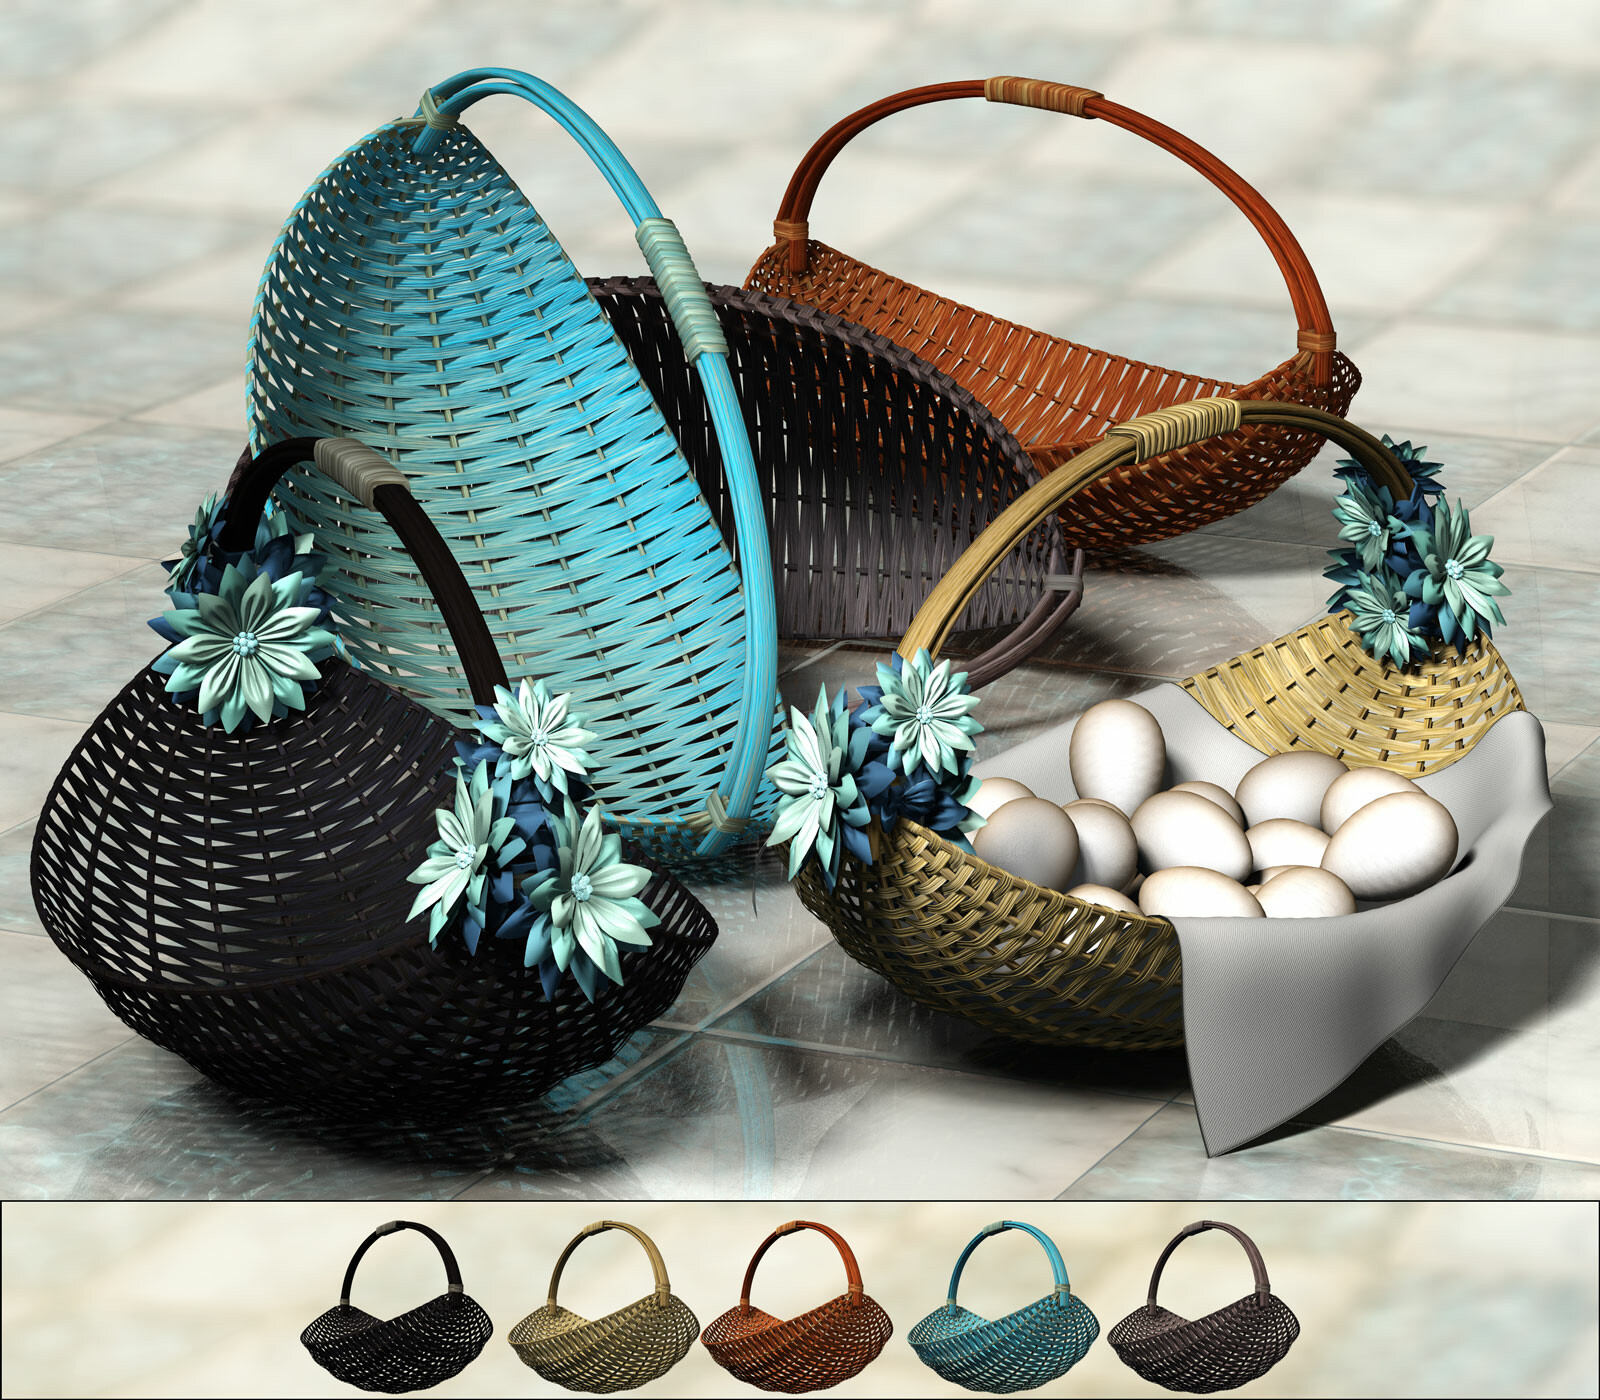 This shows the oval, boat-like baskets with each of their colors and options.